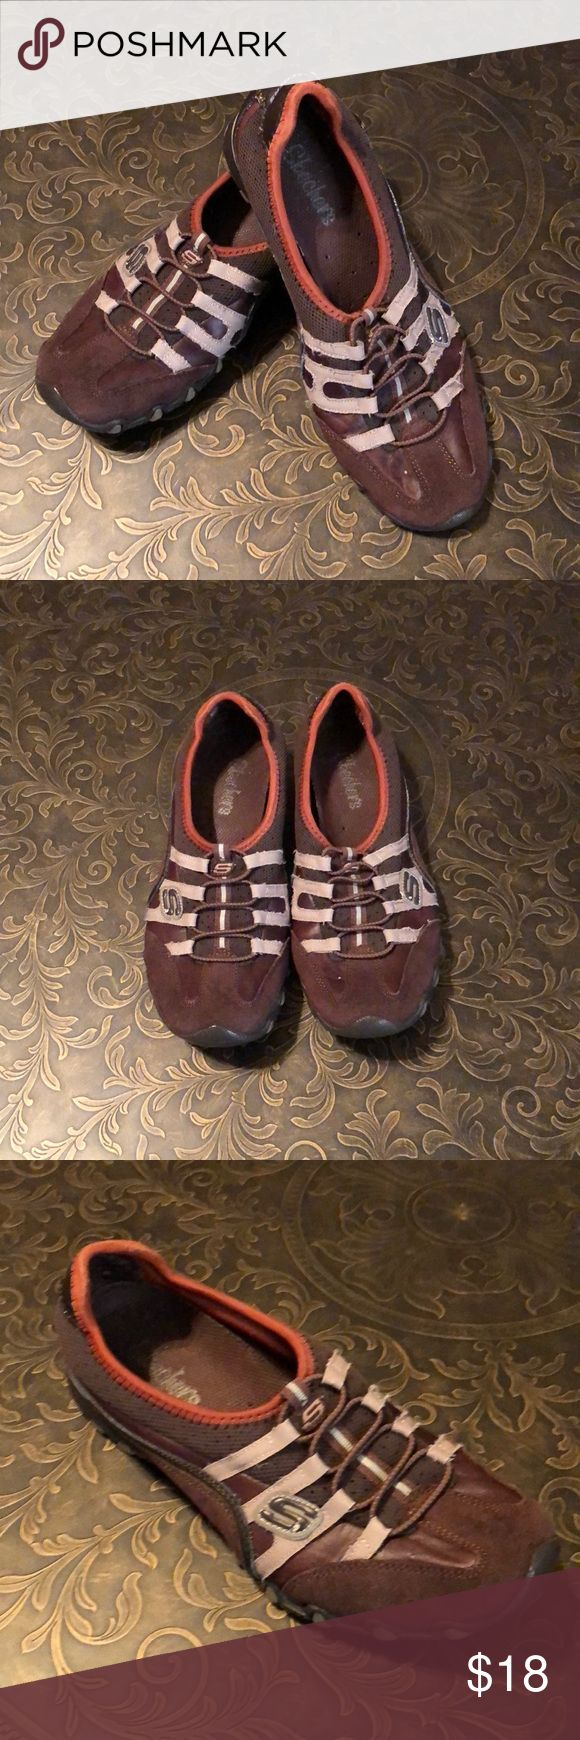 Skechers Slip On Shoes Brown slip on shoes with tan & orange trim. In good used condition. Skechers Shoes